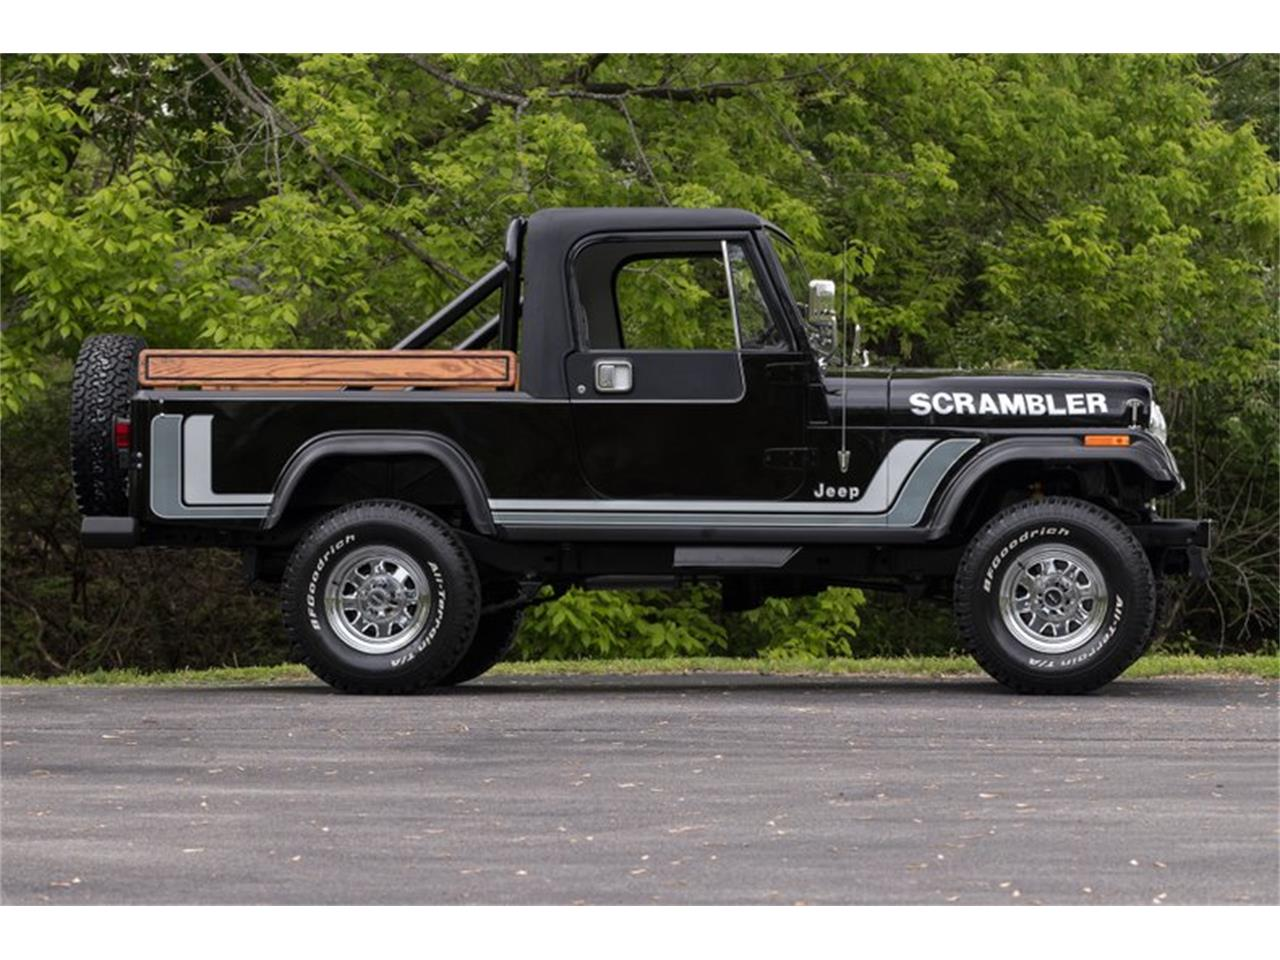 Large Picture of '82 Jeep CJ8 Scrambler Offered by Fast Lane Classic Cars Inc. - Q11Z